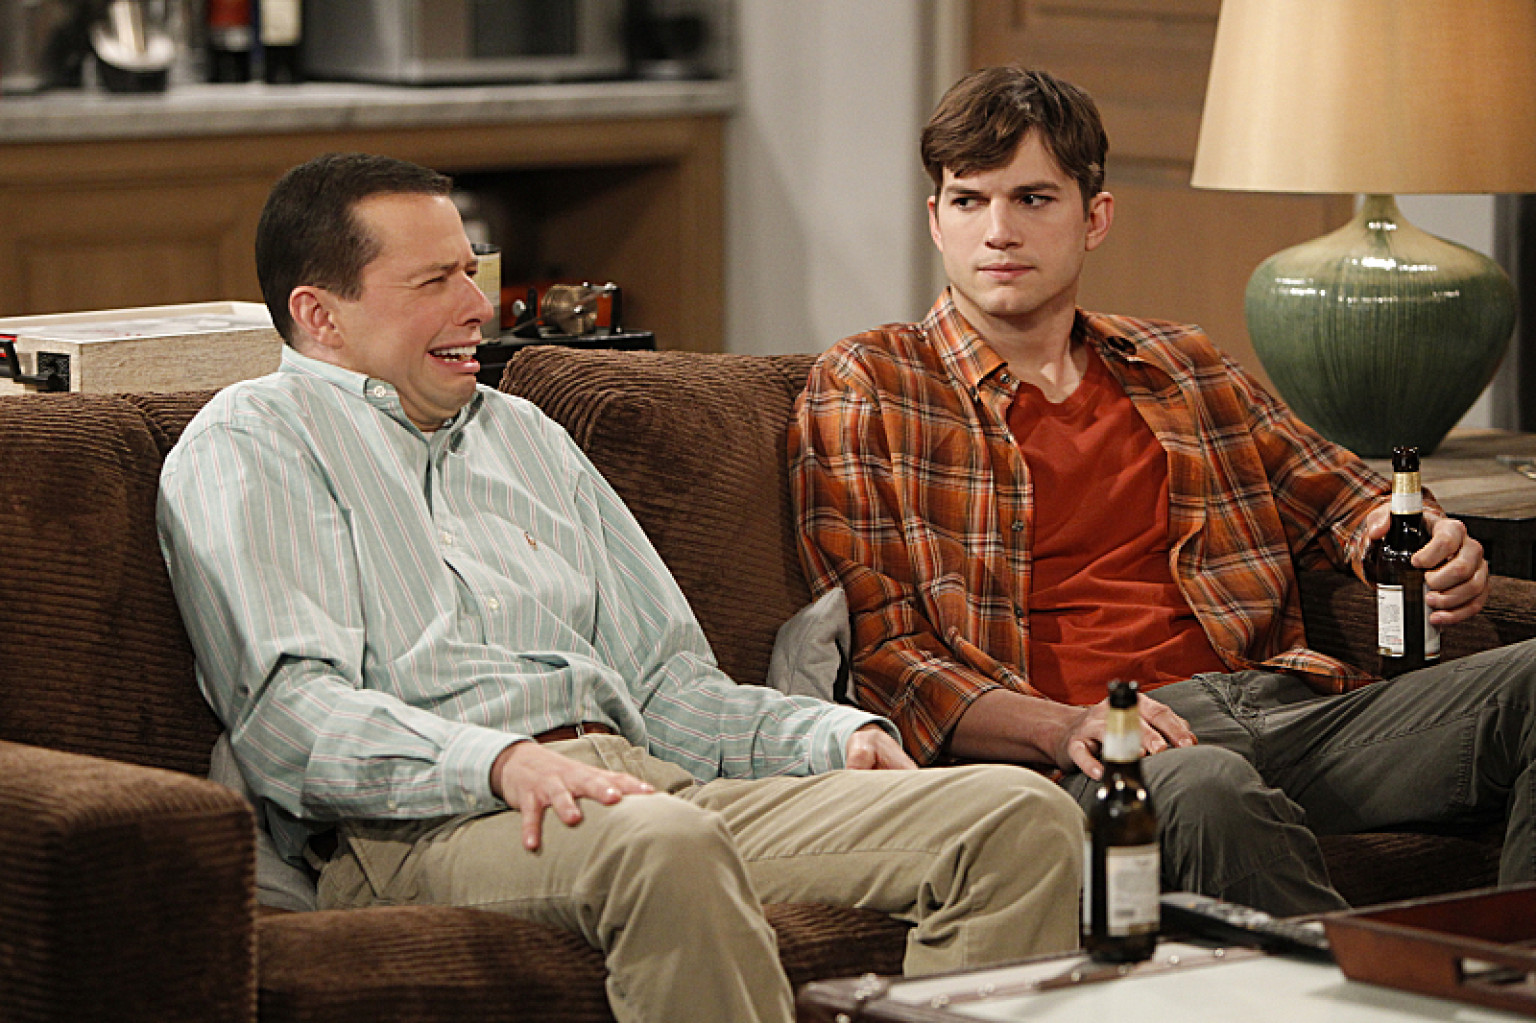 Couchtisch Two And A Half Men 39two And A Half Men 39 Jenny Character Poised To Shakeup